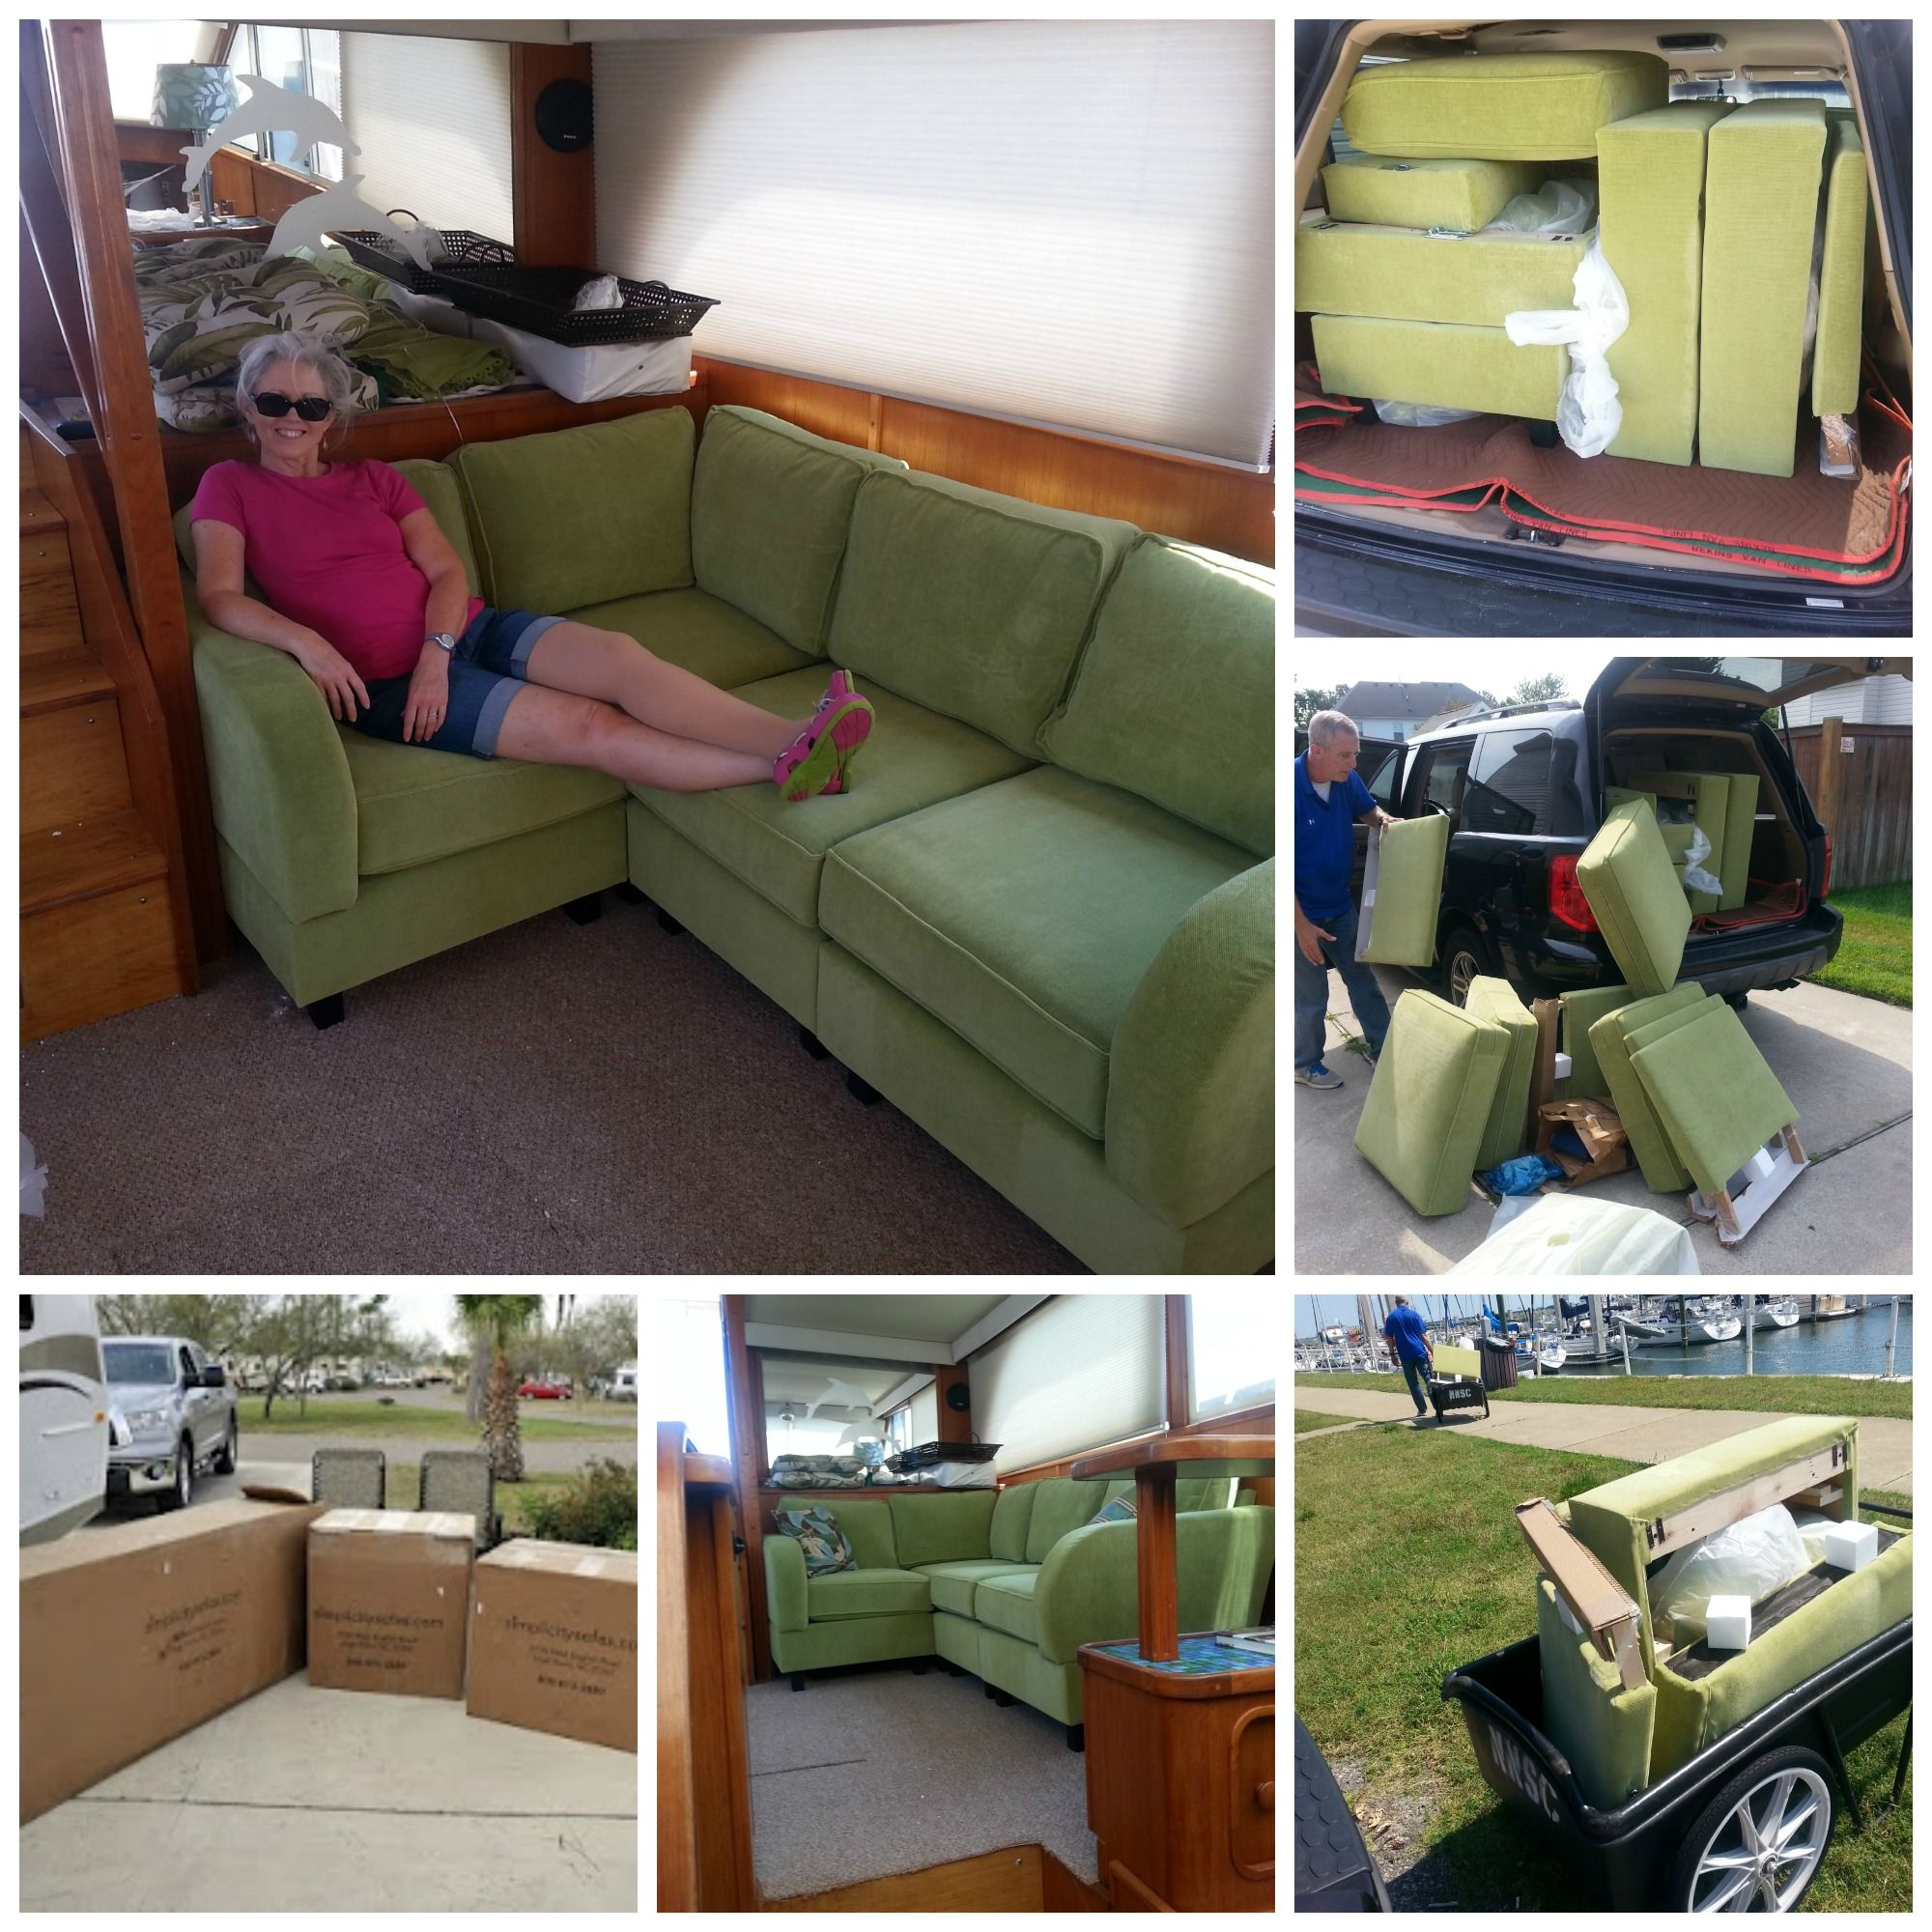 Sectional For A Boat Furniture For Small Tight Spaces Narrowdoor Tightspace Smallspace Simplicity Sofas Small Apartment Sofa Boat Furniture